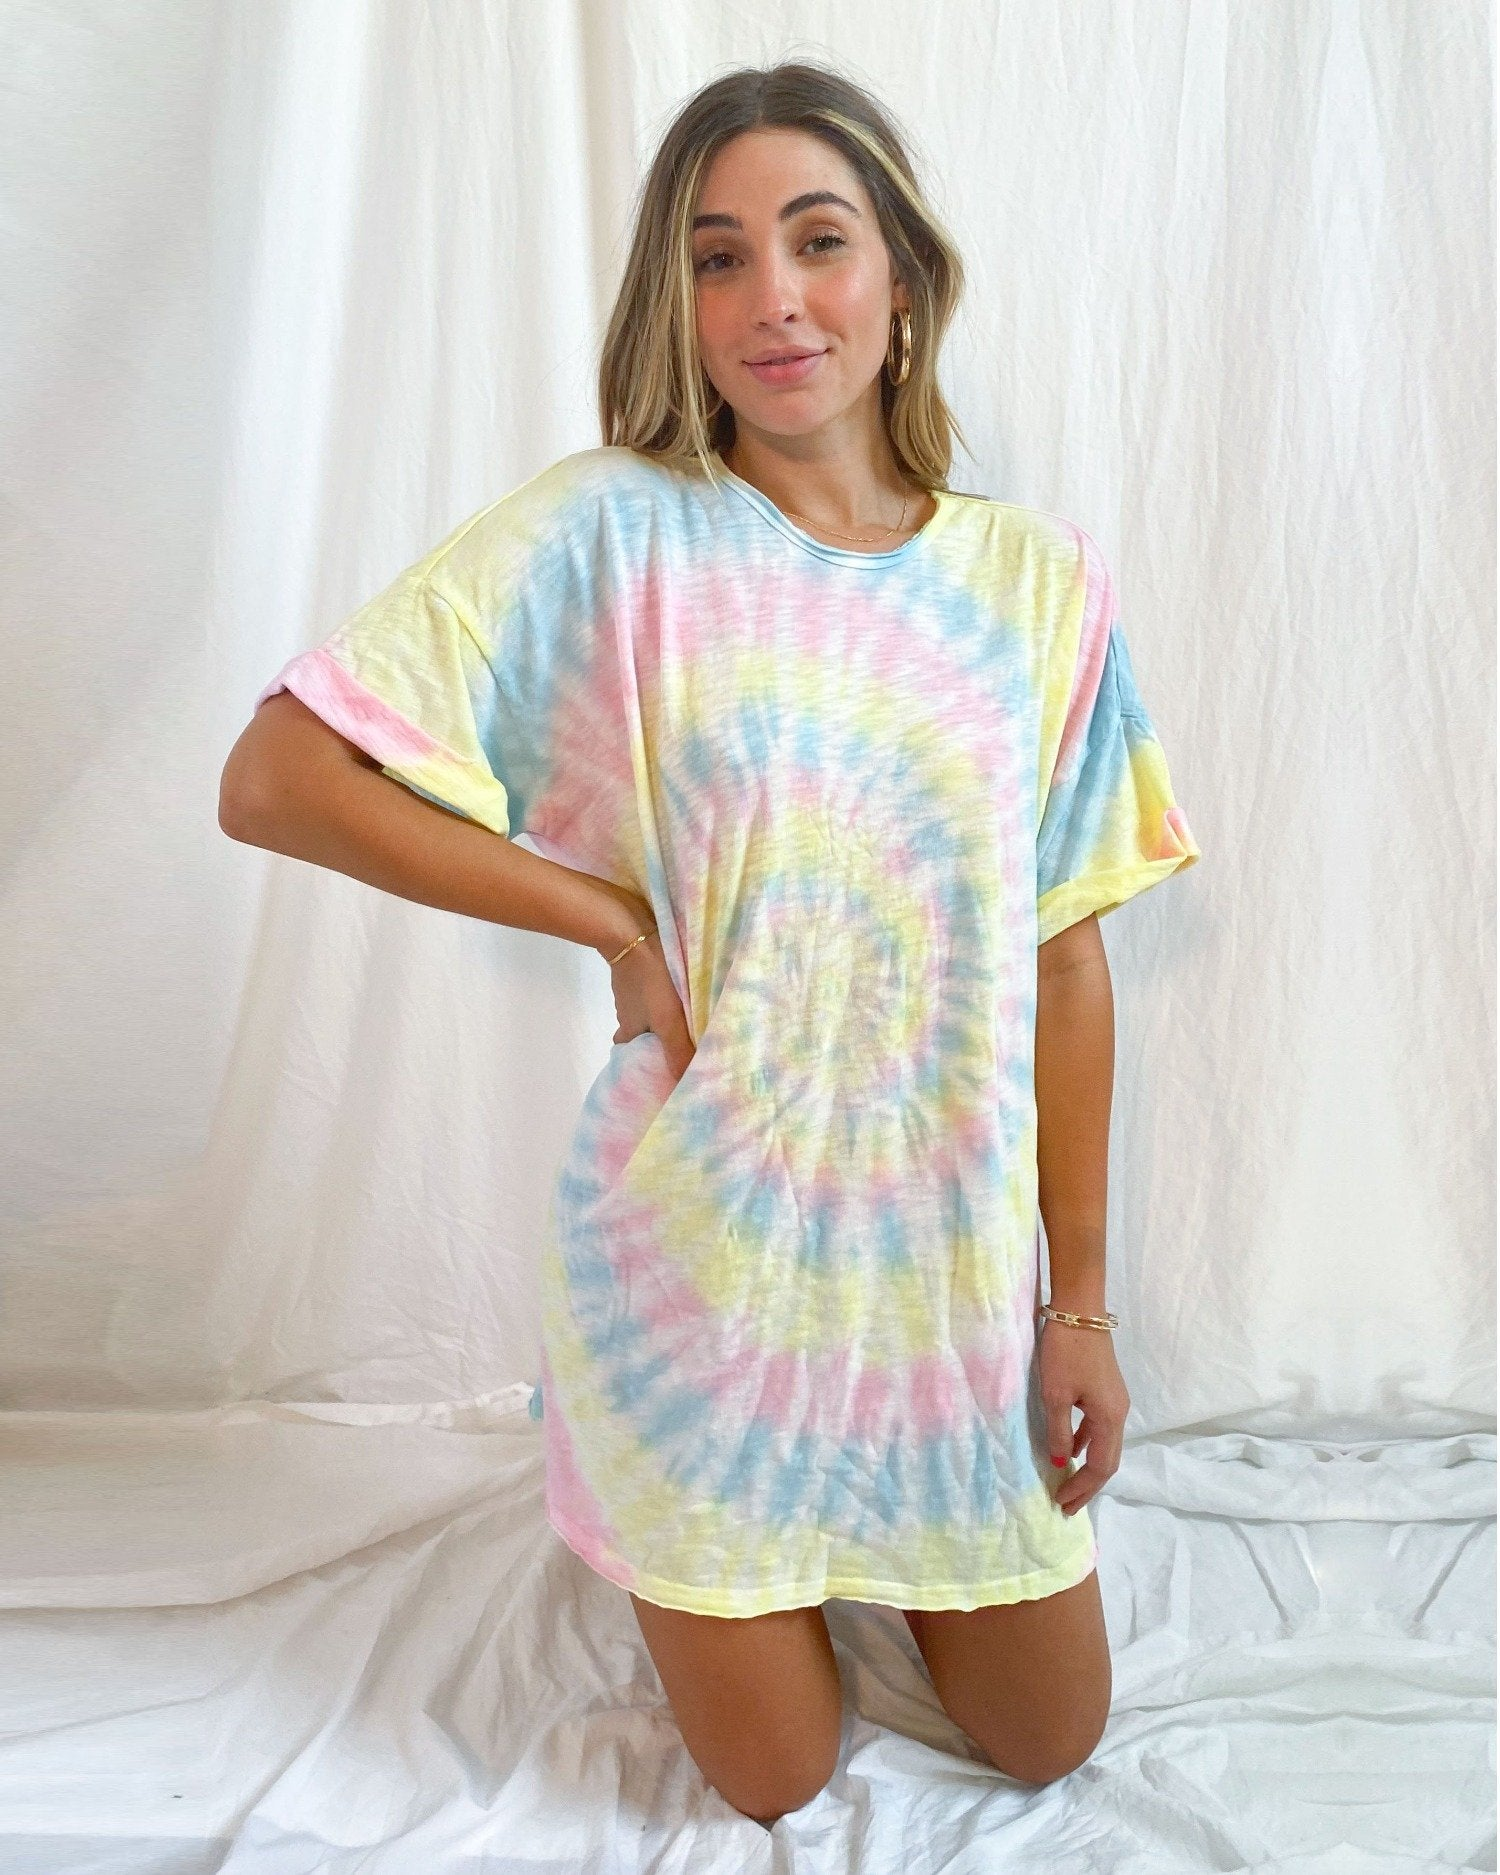 Load image into Gallery viewer, Dylan T-Shirt Dress - Rainbow Tie Dye | Show Me Your Mumu - Women's Clothing